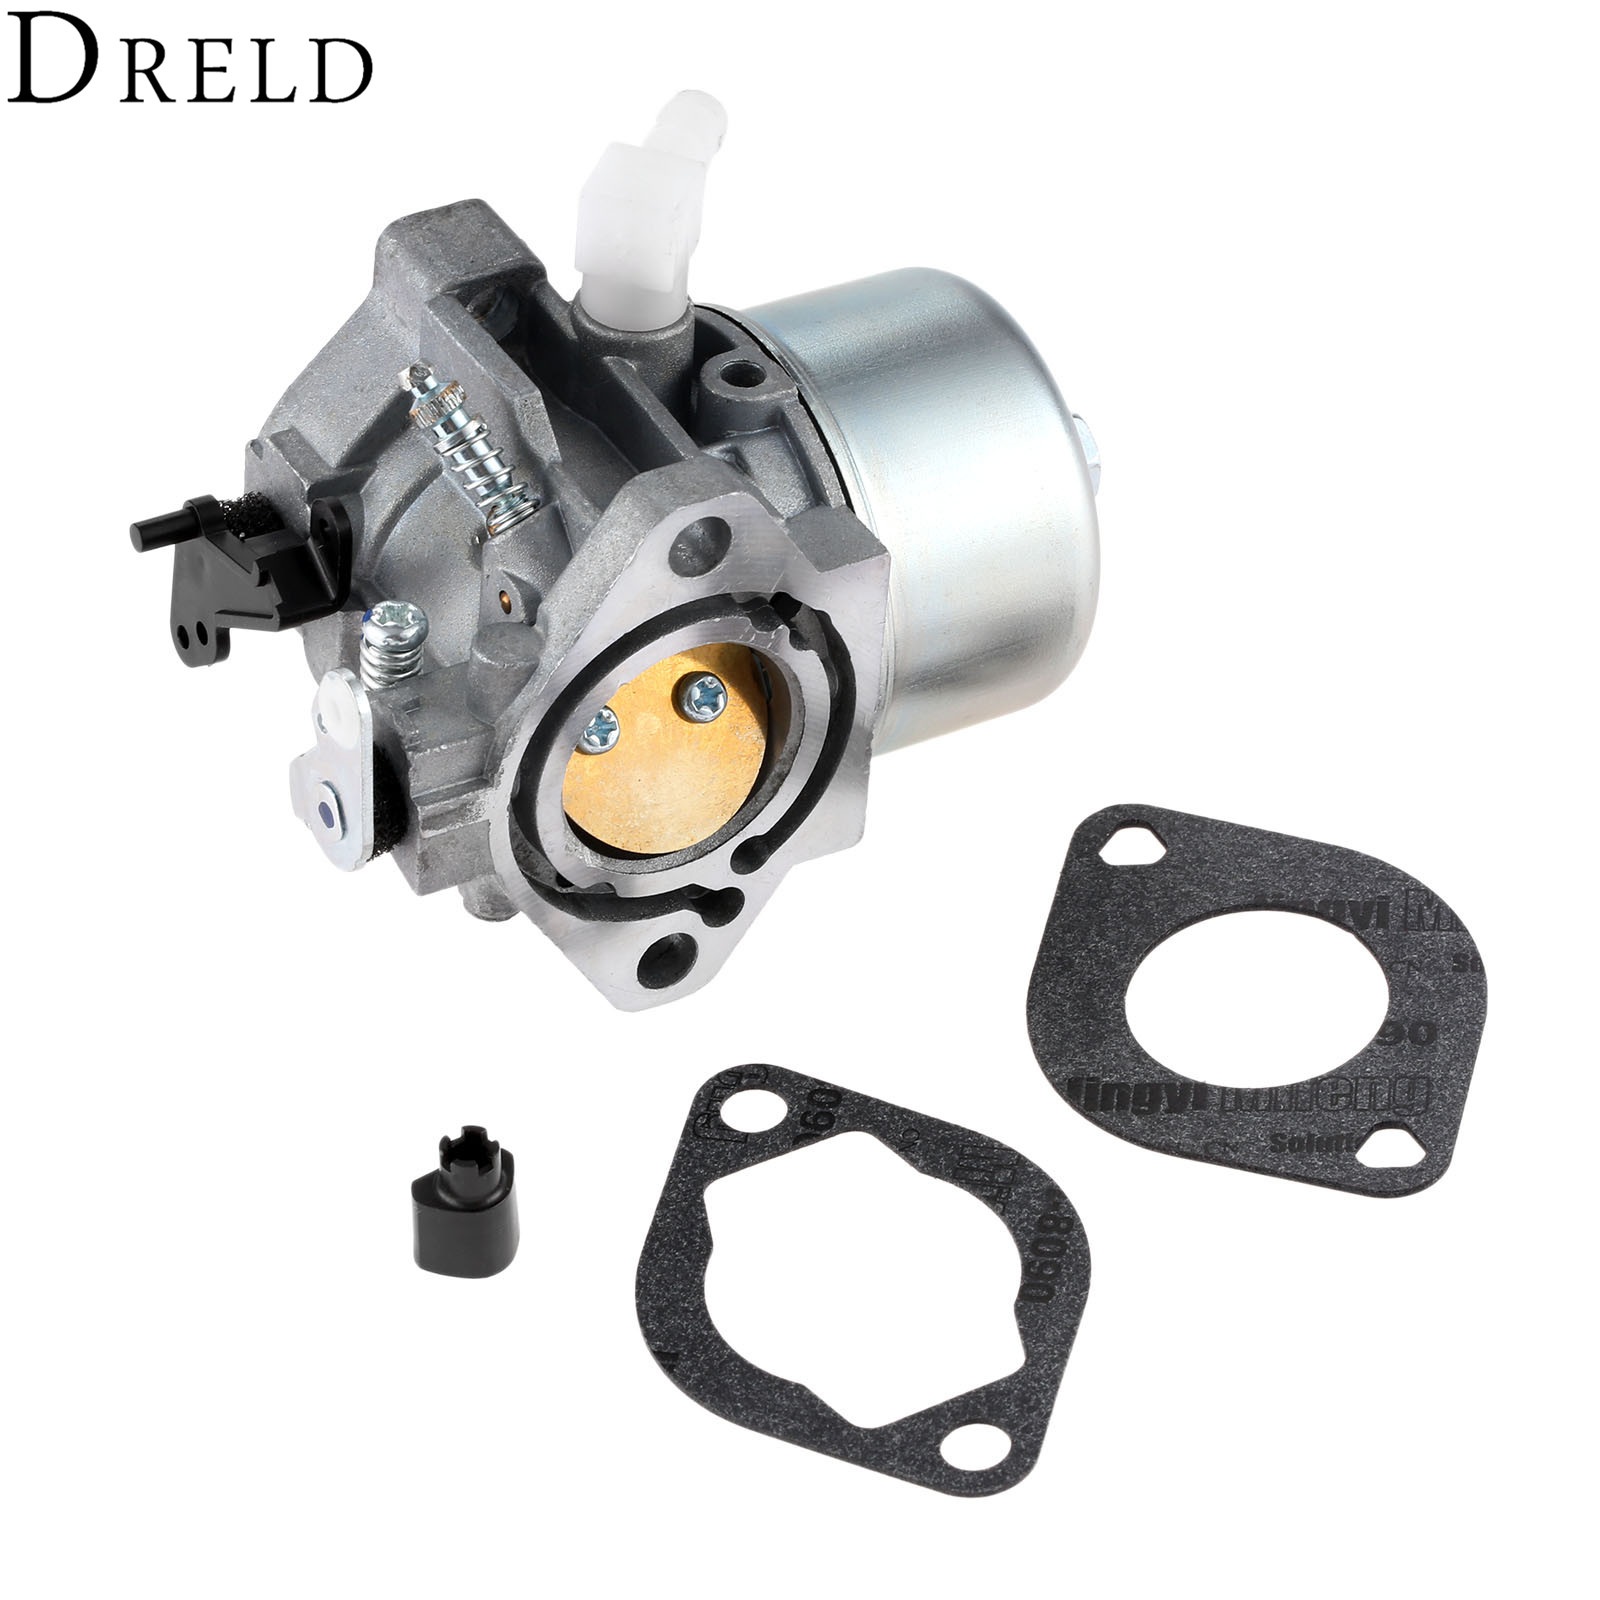 DRELD Replacements Carburetor with Gasket Fuel Filter Line for HONDA GCV160  HRB216 HRS216 HRR216 HRT216 HRZ216 Lawnmowers CARB-in Lawn Mower from Tools  on ...